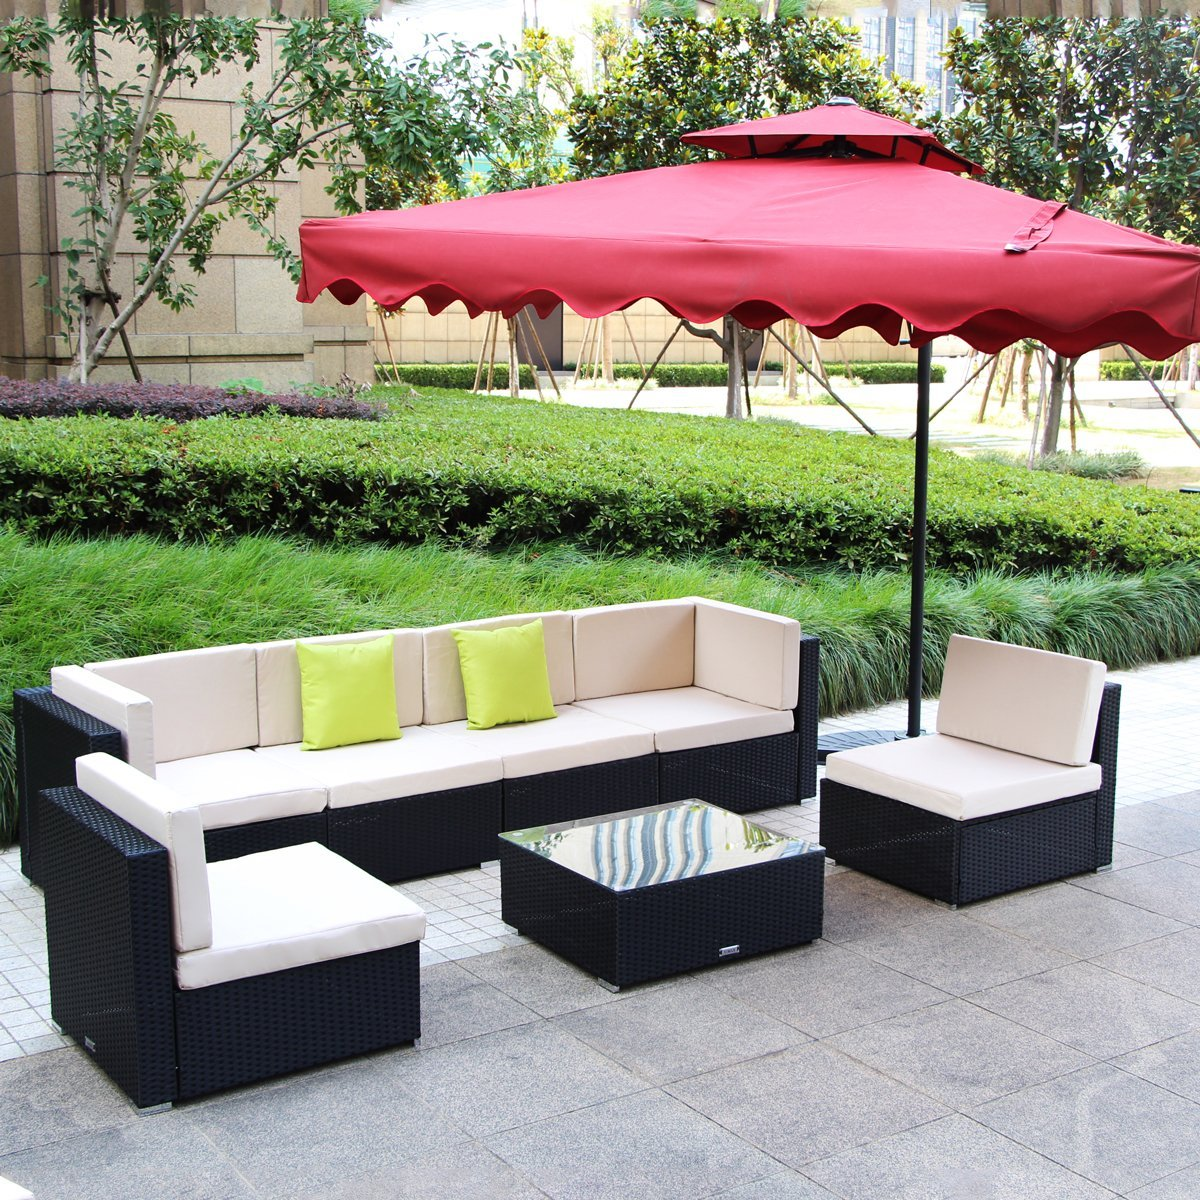 Outdoor Wicker Furniture Designs